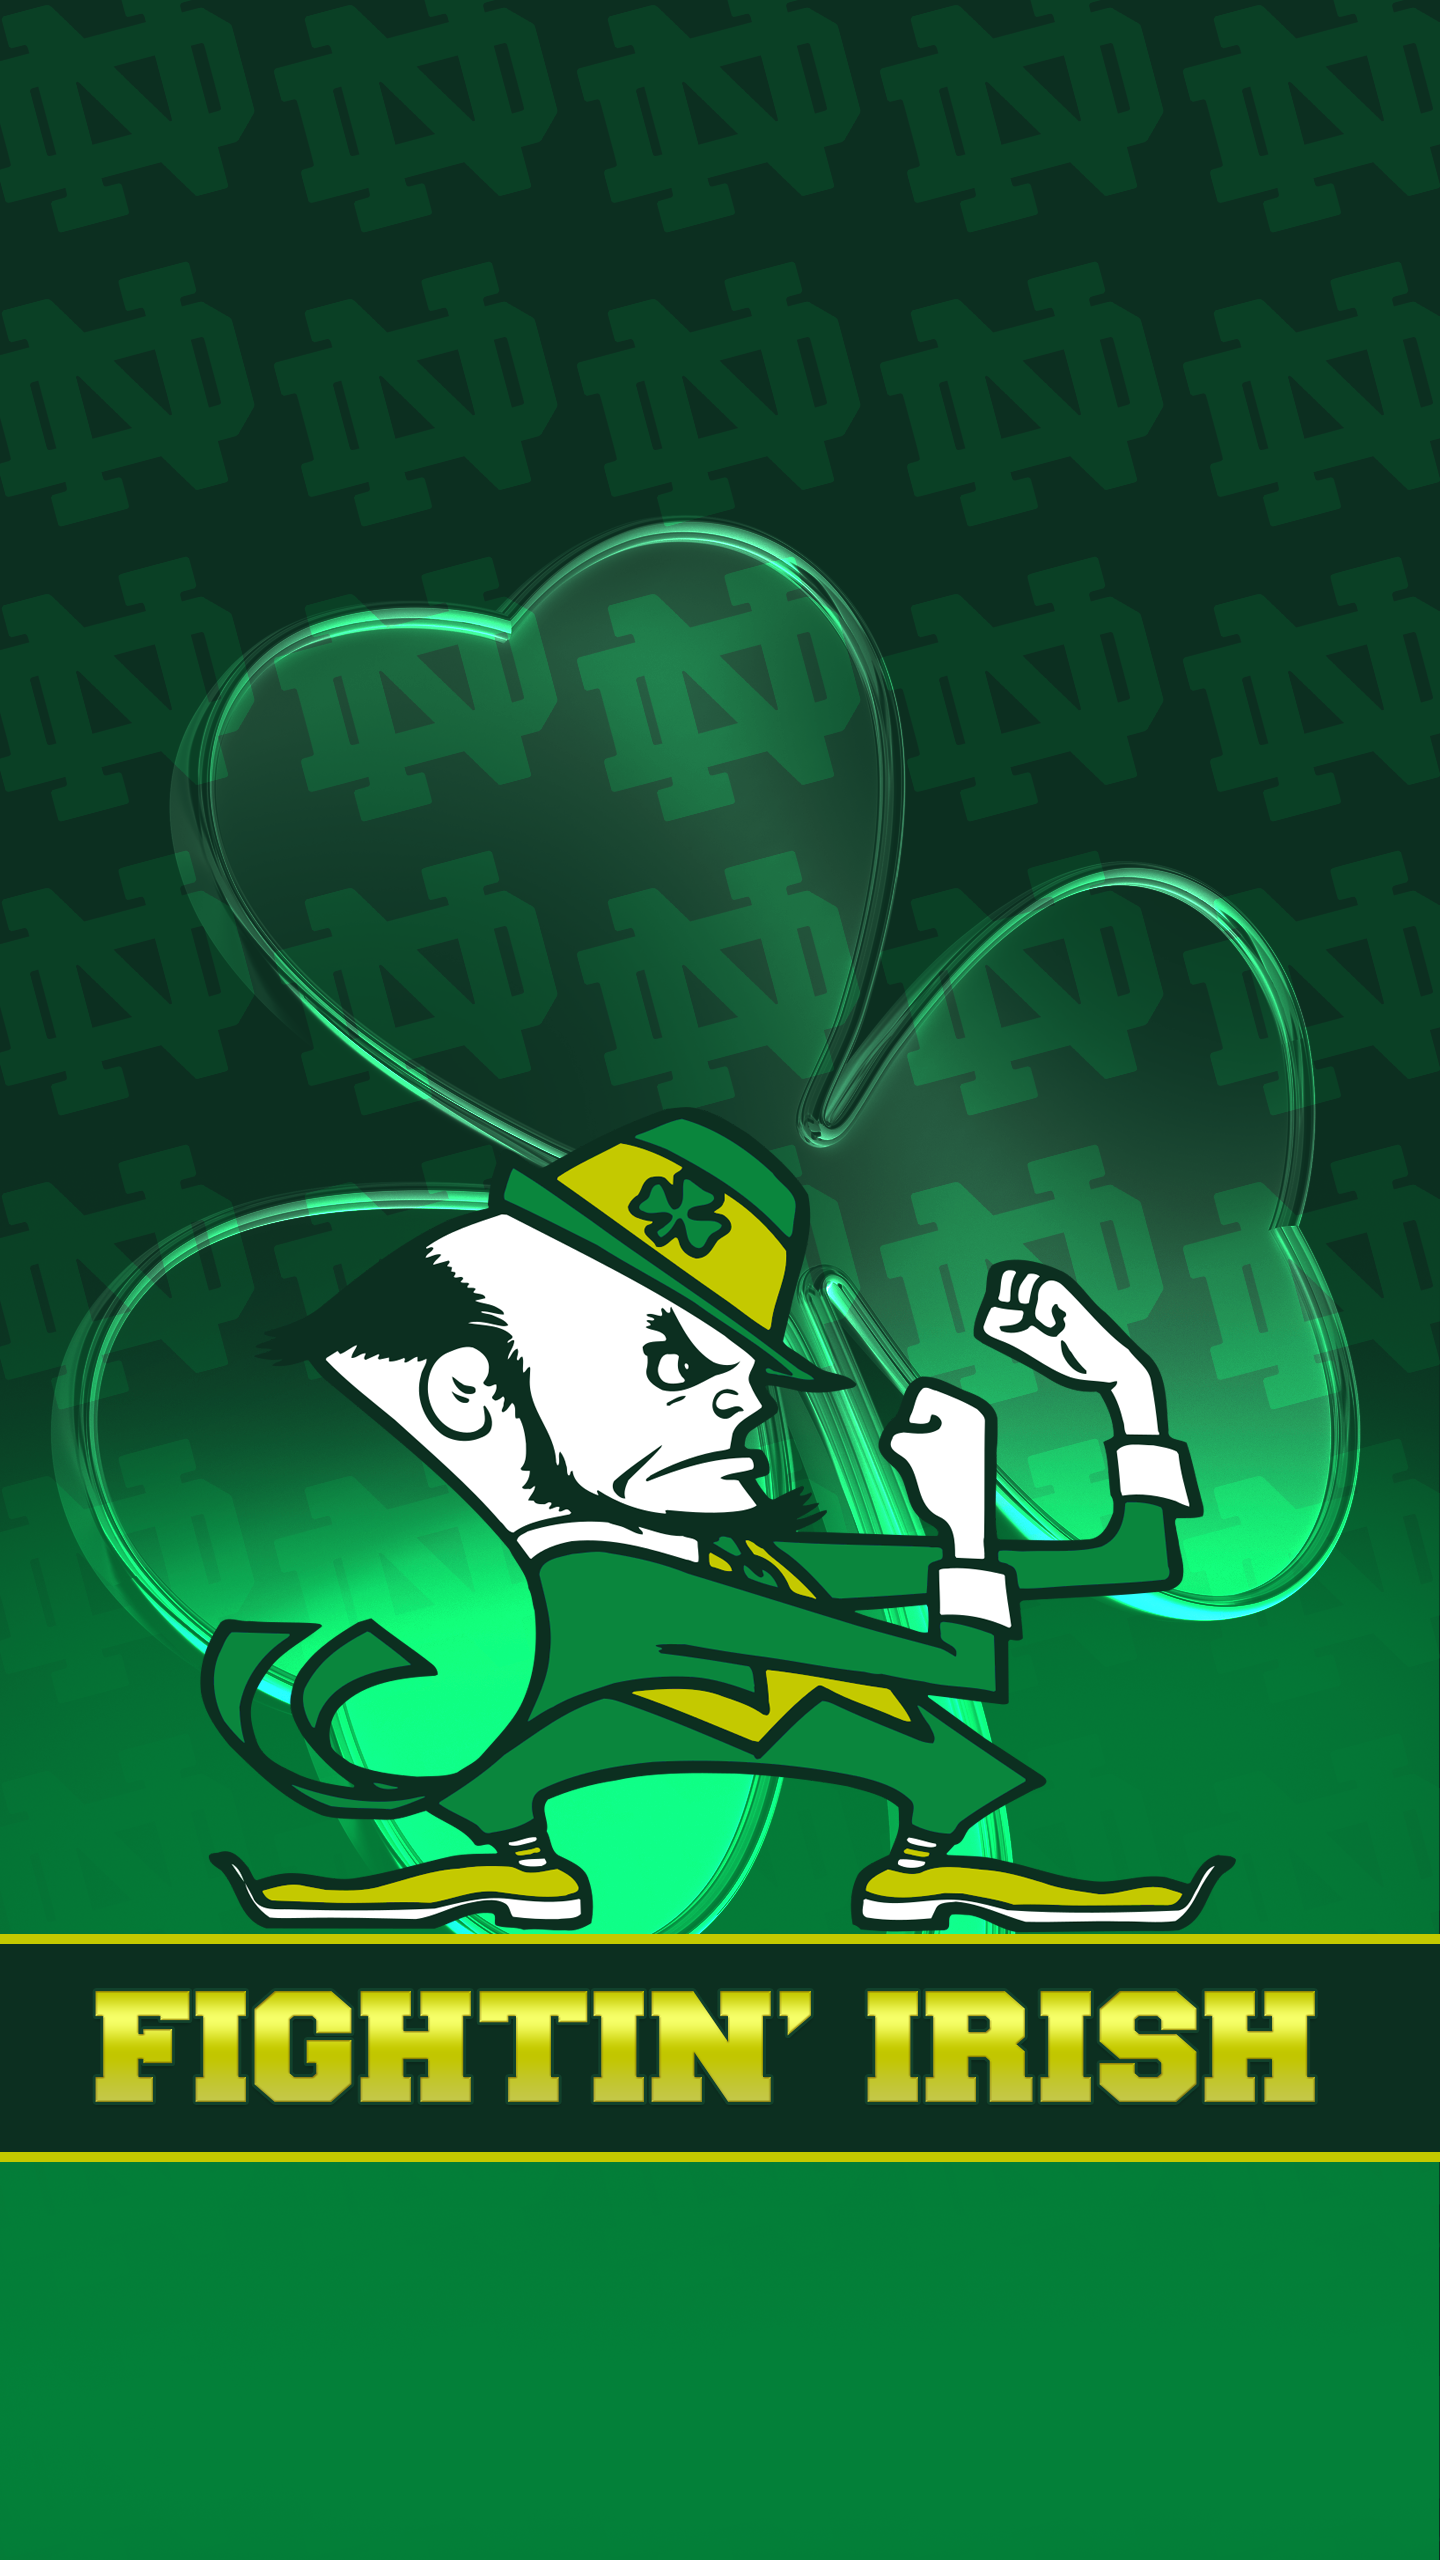 Notre Dame Wallpaper Notre Dame Wallpaper Notre Dame Fighting Irish Football Notre Dame Fighting Irish